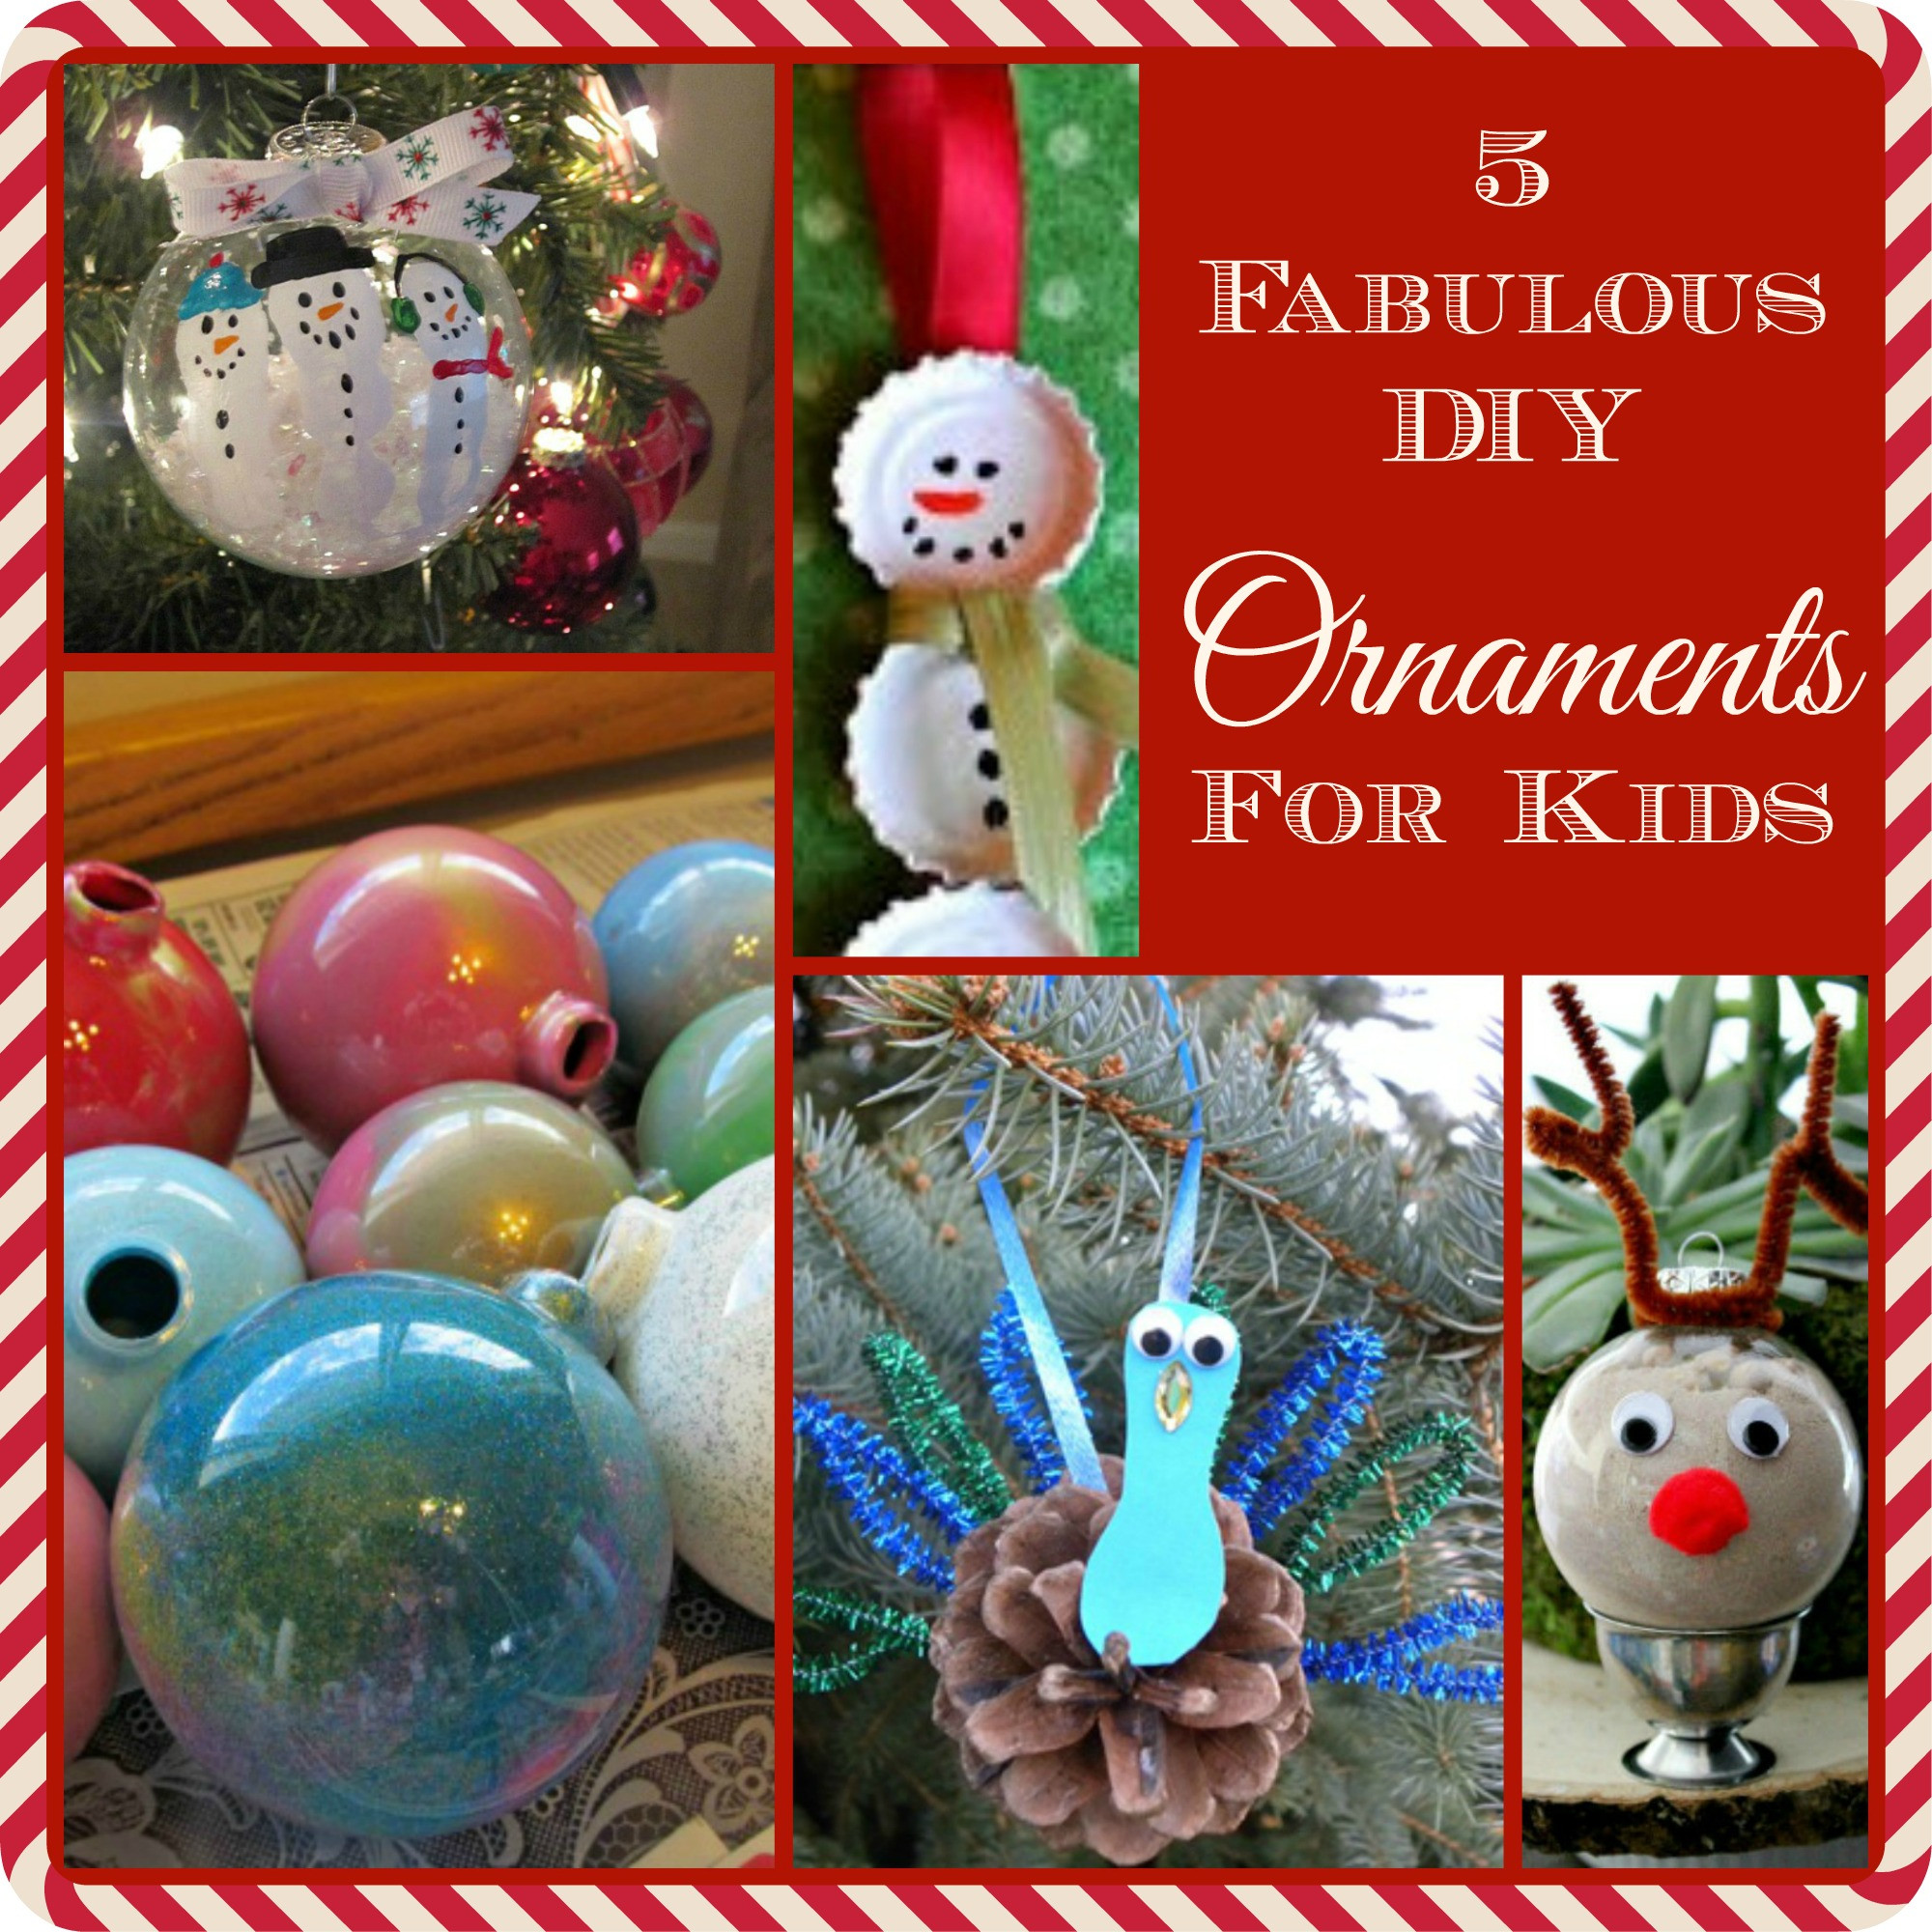 Best ideas about Christmas Ornaments DIY Kids . Save or Pin 5 Fabulous DIY Christmas Ornaments for Kids The Now.